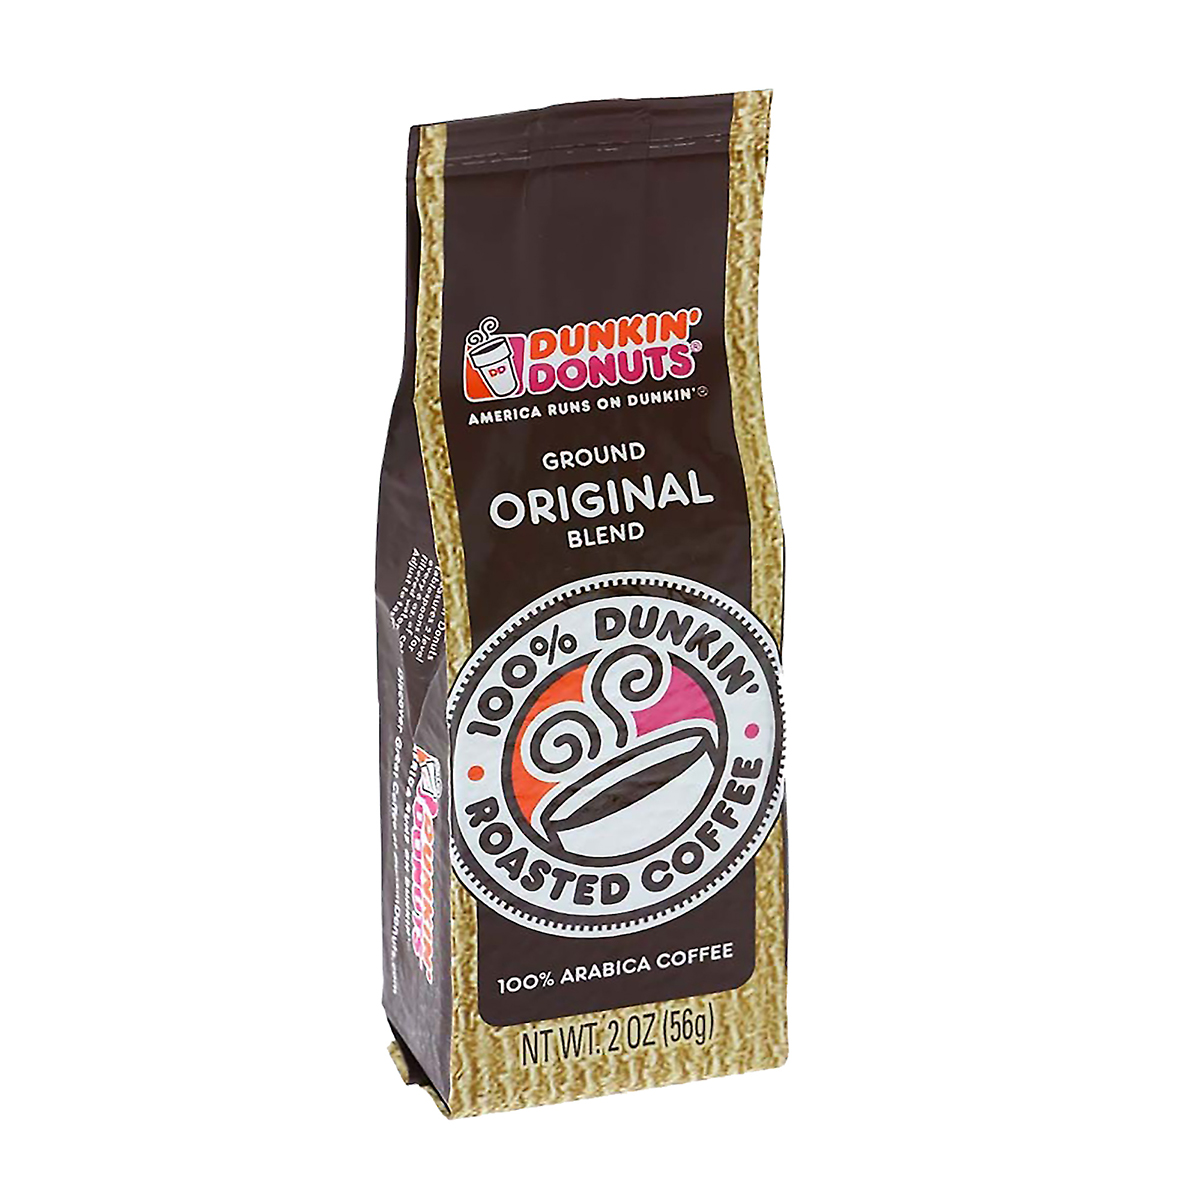 Original Blend 2oz. Mini-Brick Coffee | Shop the Dunkin Donuts ...